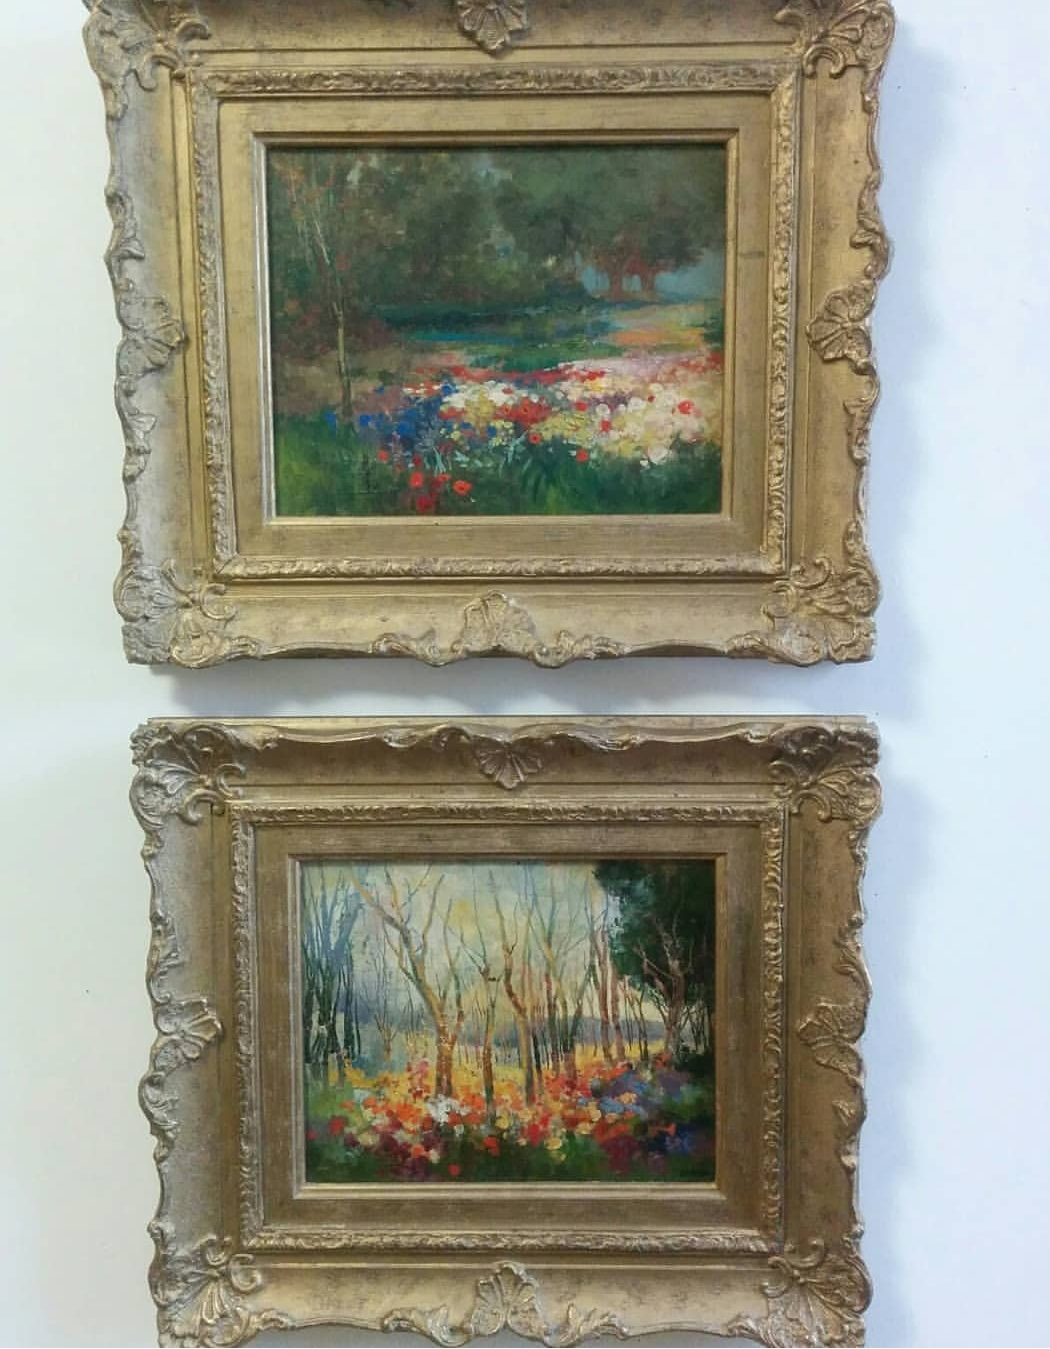 """Pair of Oil on boards 1930s-40s - Signed """"Dingli"""" on one of the two8.5"""" x 10.5"""" Frame size 16"""" x 18""""Solid wooden frames, very good condition$195.00 for the pairSOLD"""